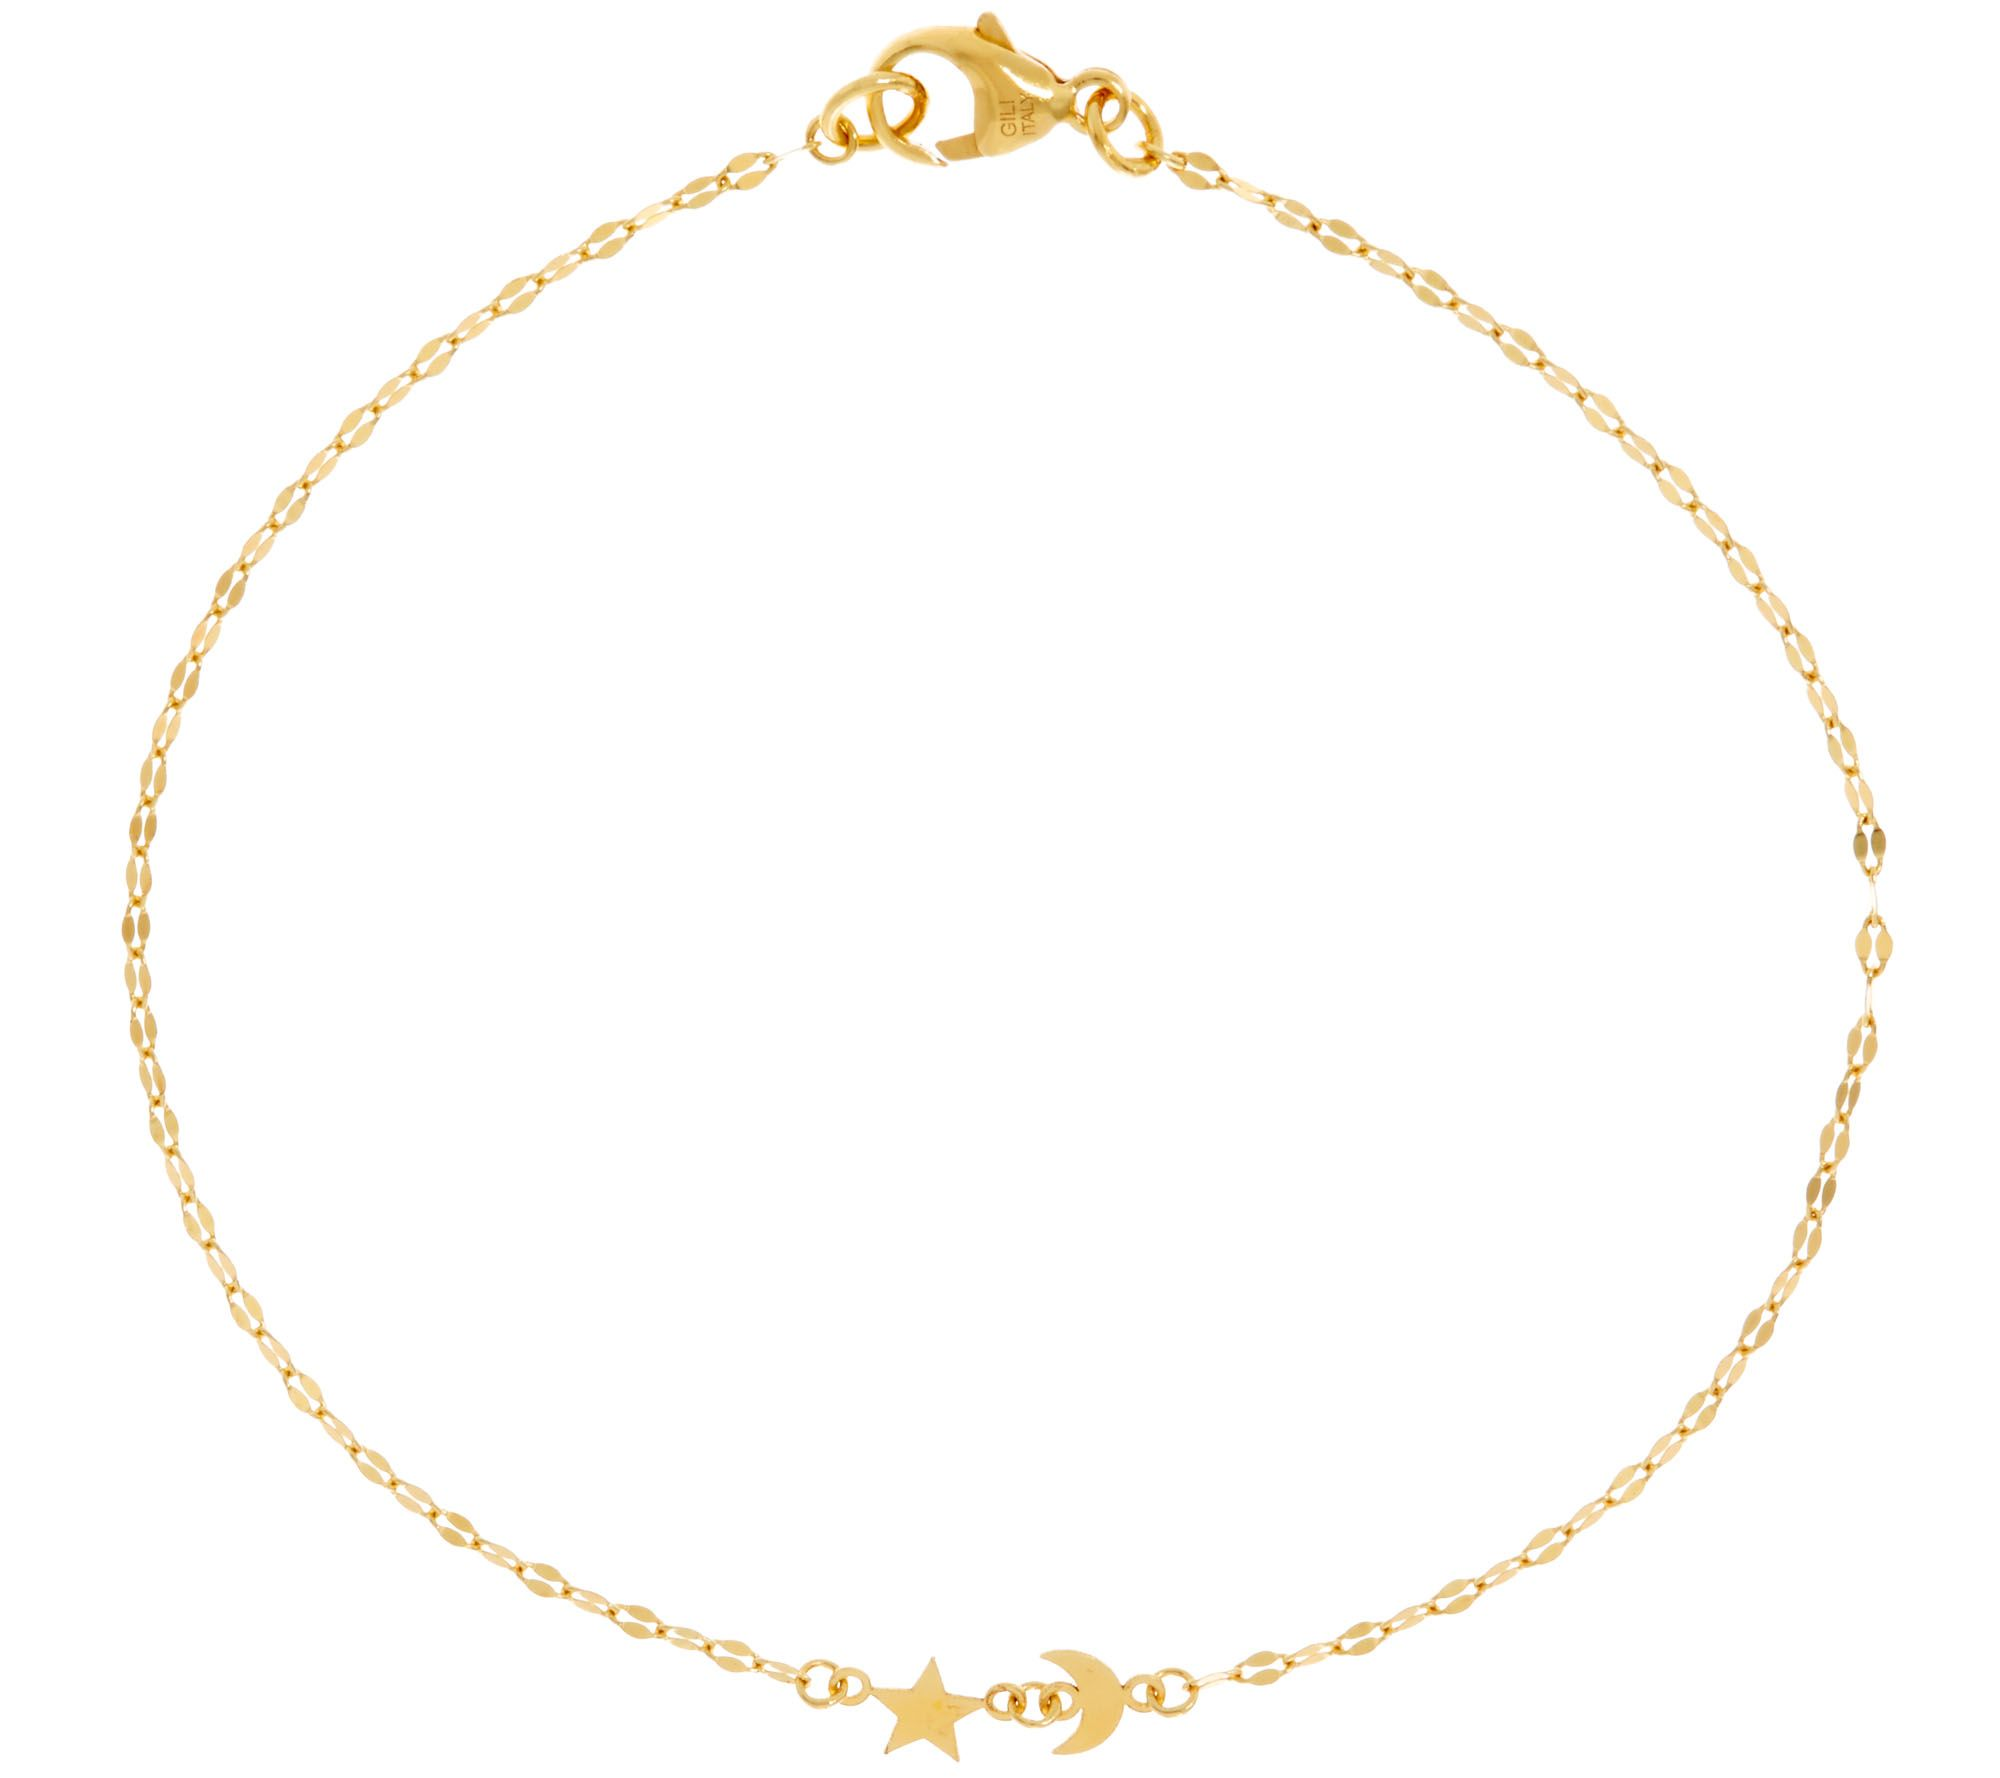 leg enkelband ankle enkelbandje anklets beach cavigliera pulsera foot cheville gold jewelry chain pie charm anklet item peace from femme charms with bracelet bracelets in